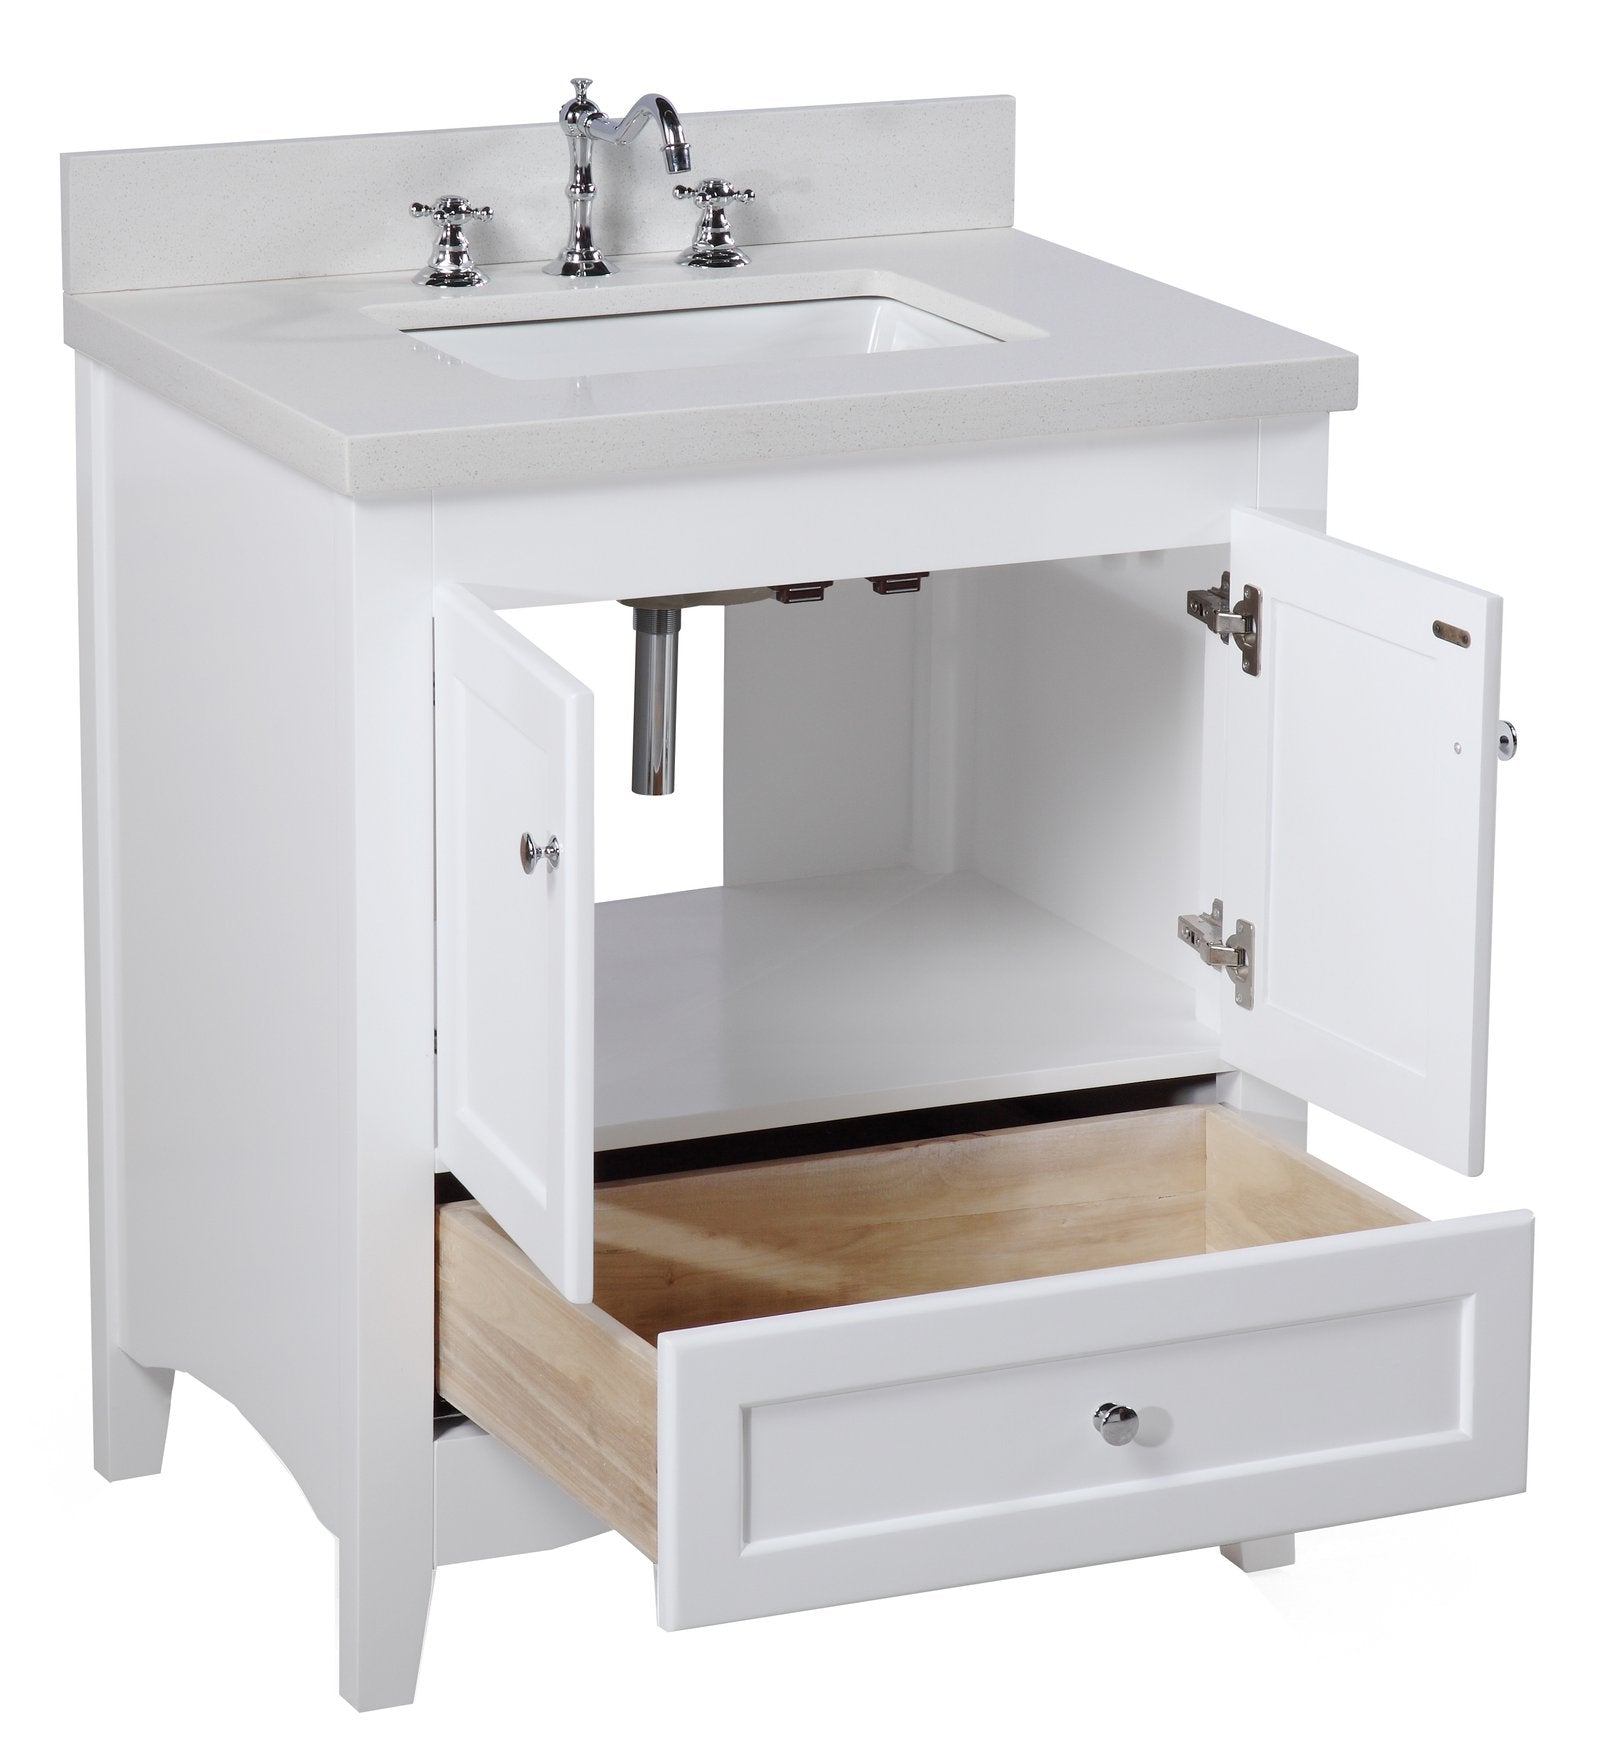 Abbey 30 Shaker Style Bathroom Vanity With Quartz Top Kitchenbathcollection